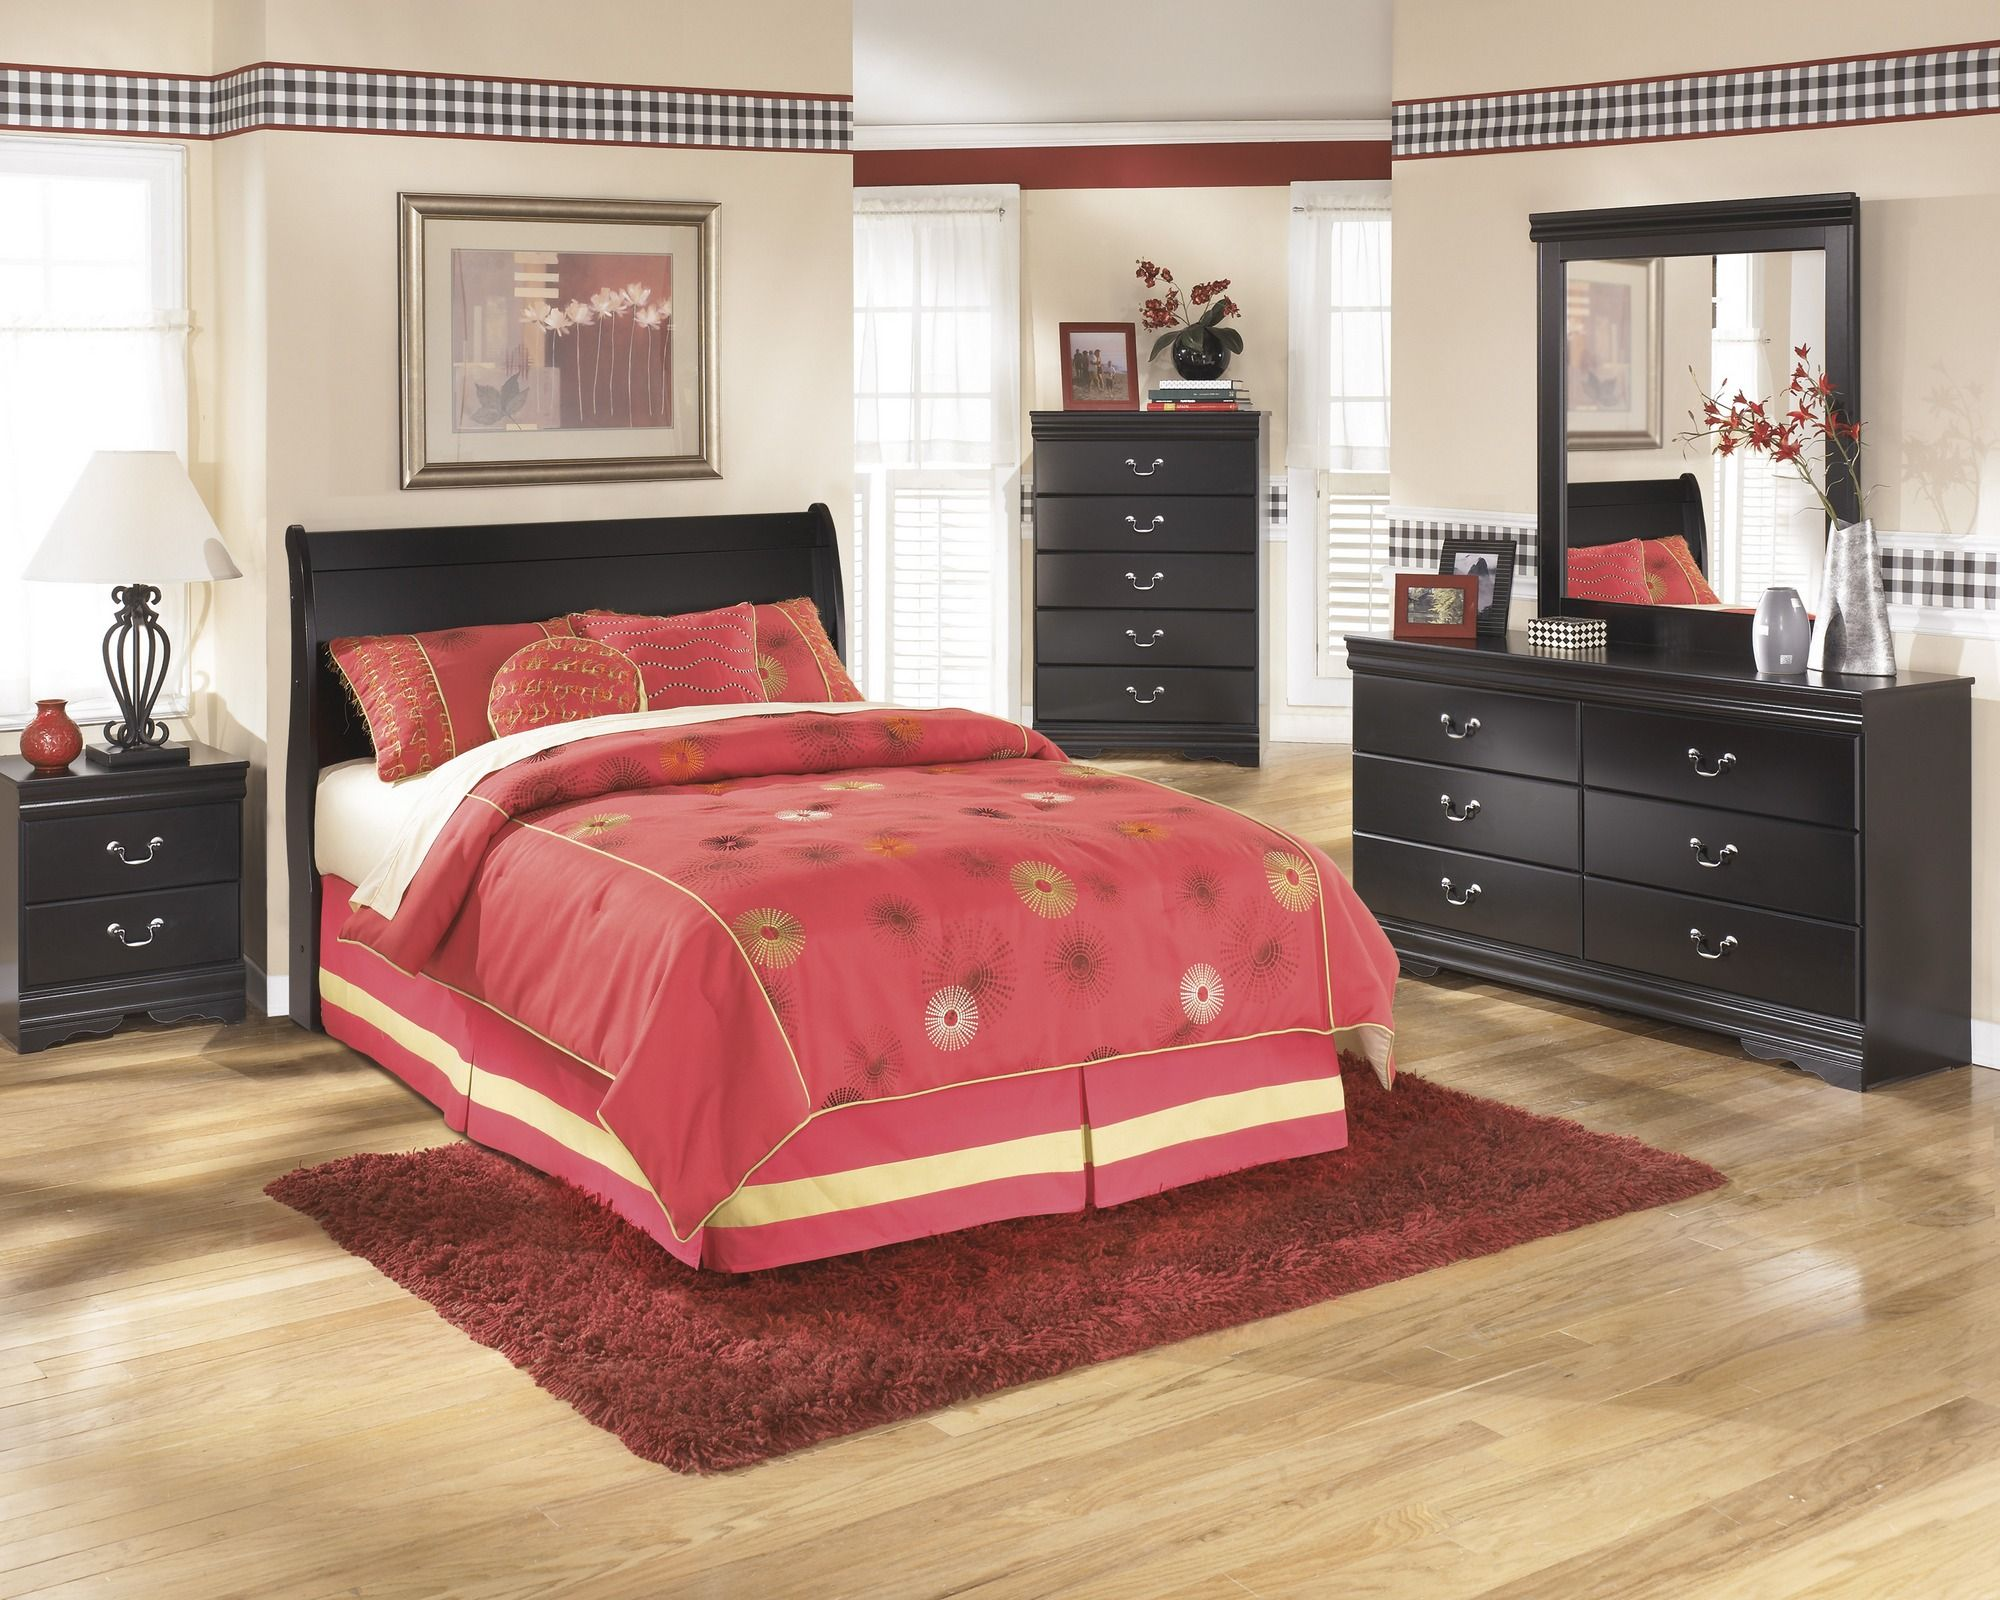 B Signature Design By Ashley Huey Vineyard Dresser Black - Big sandy bedroom furniture